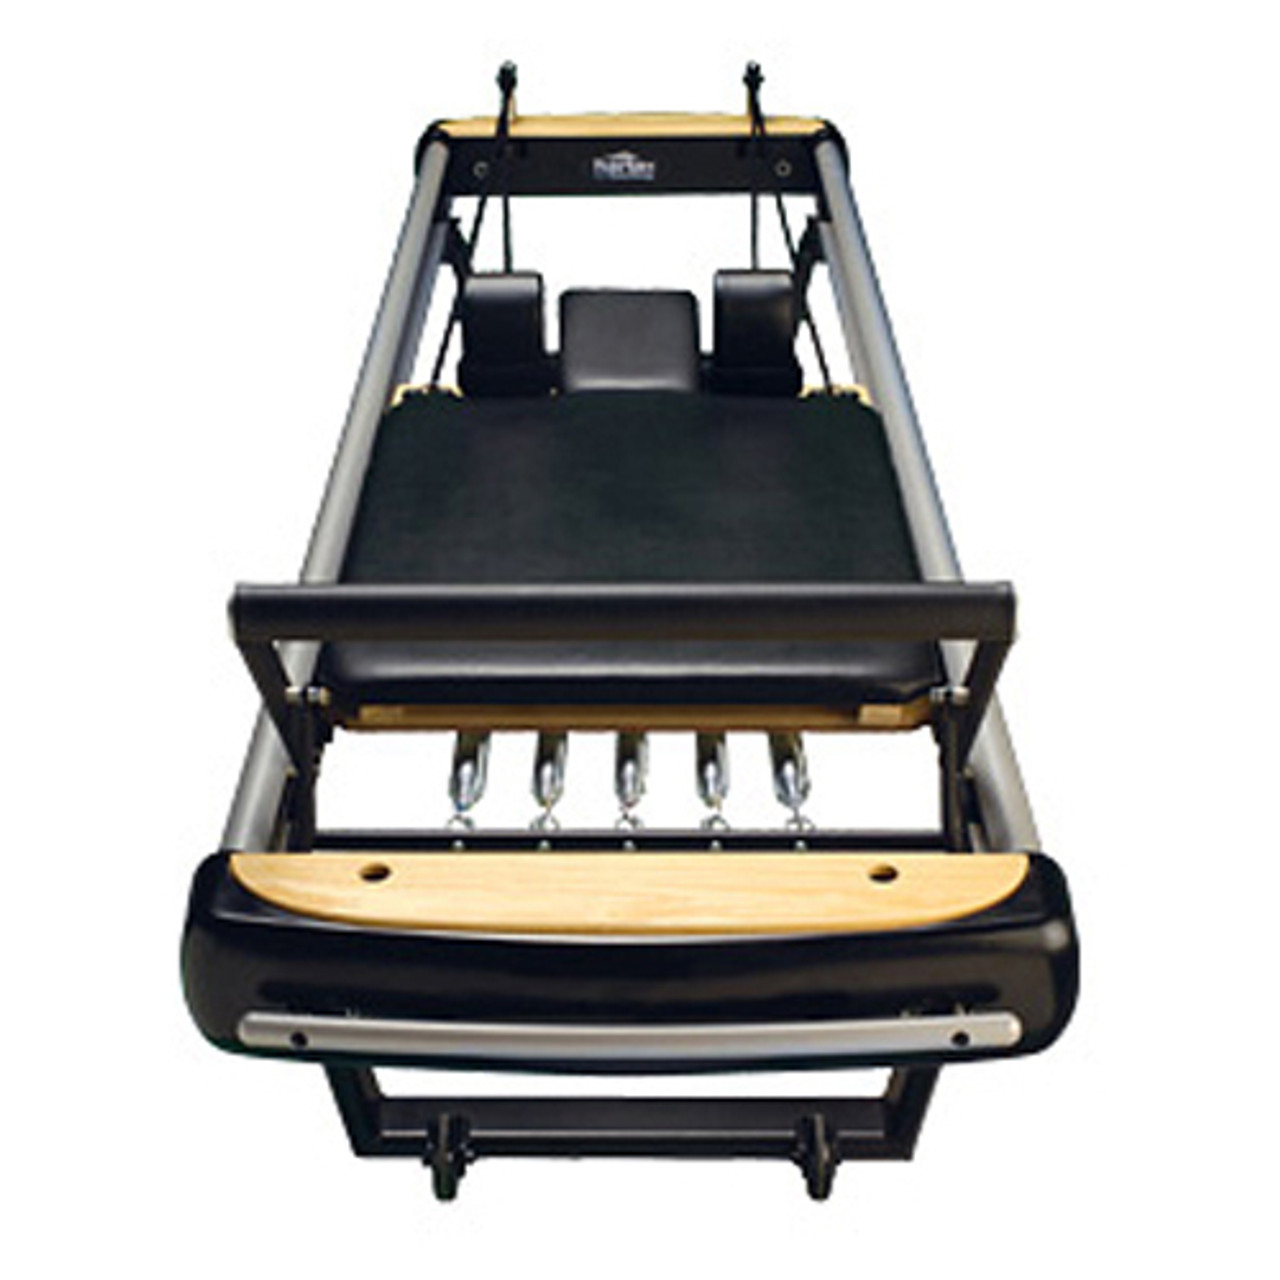 Peak Pilates Mve Fitness Chair: MVe® Pilates Reformer